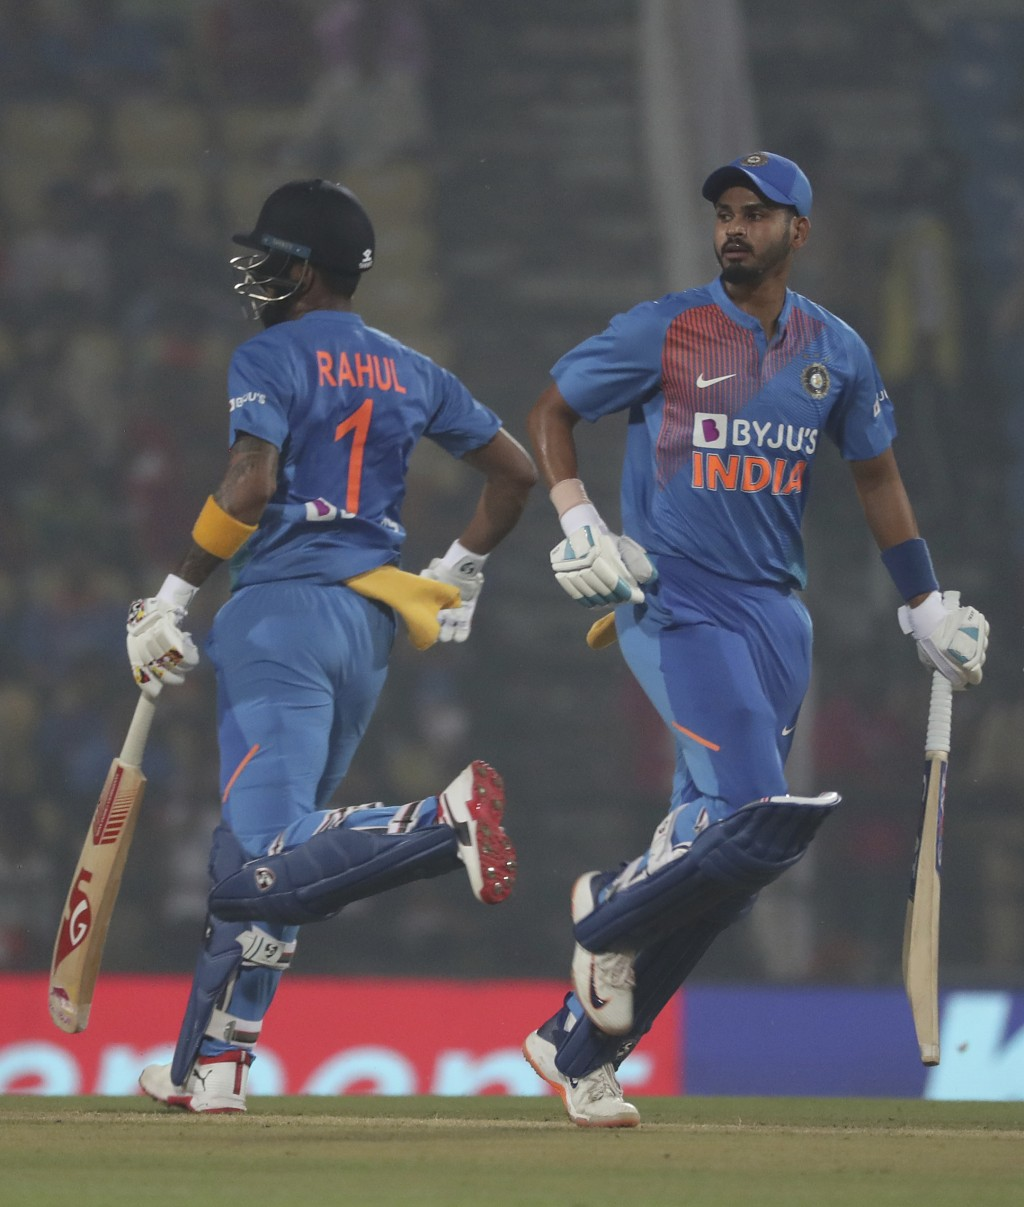 India's Shreyas Iyer, right, along with K.L.Rahul runs between the wicket during third Twenty20 international cricket match against Bangladesh in Nagp...